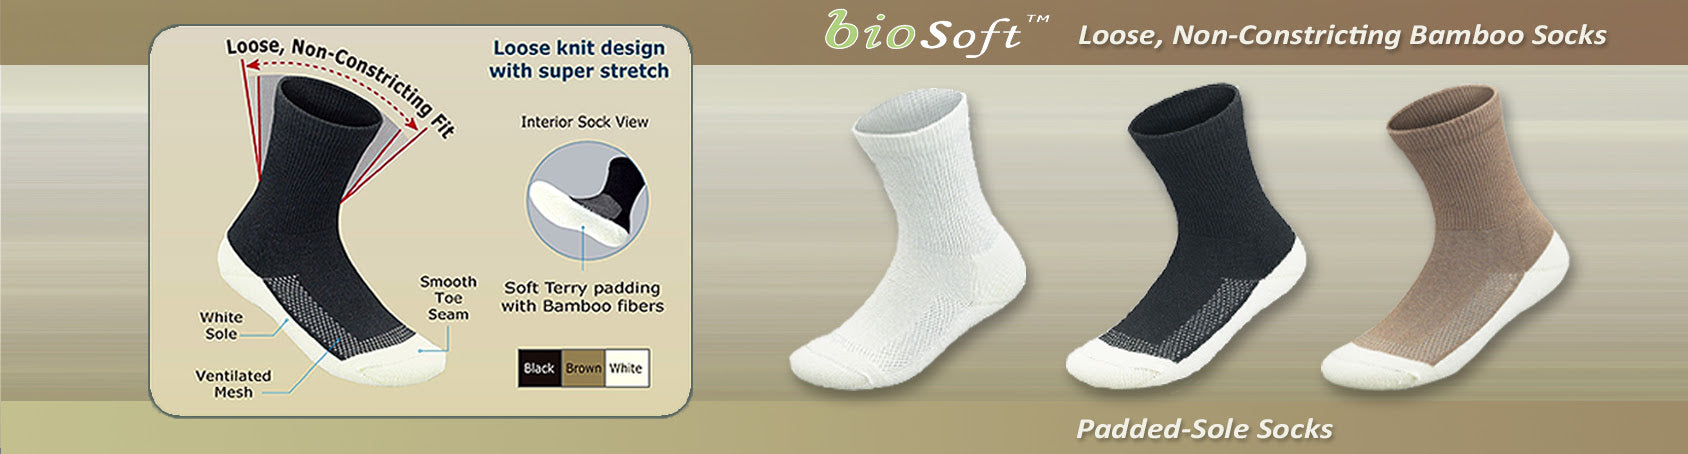 Orthofeet orthopedic socks